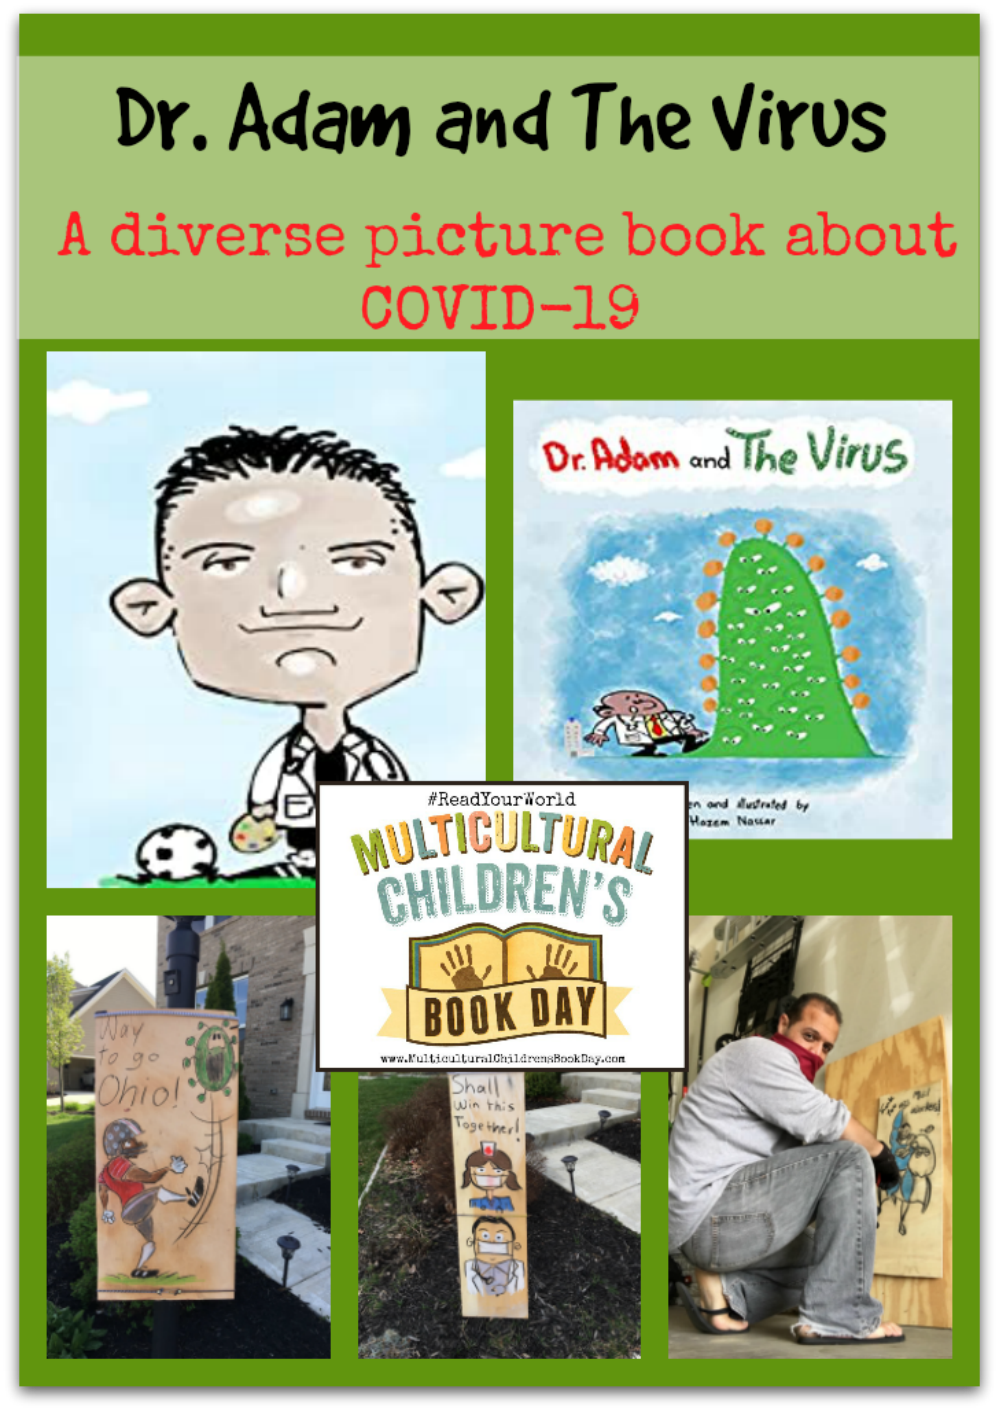 A diverse picture book about COVID19